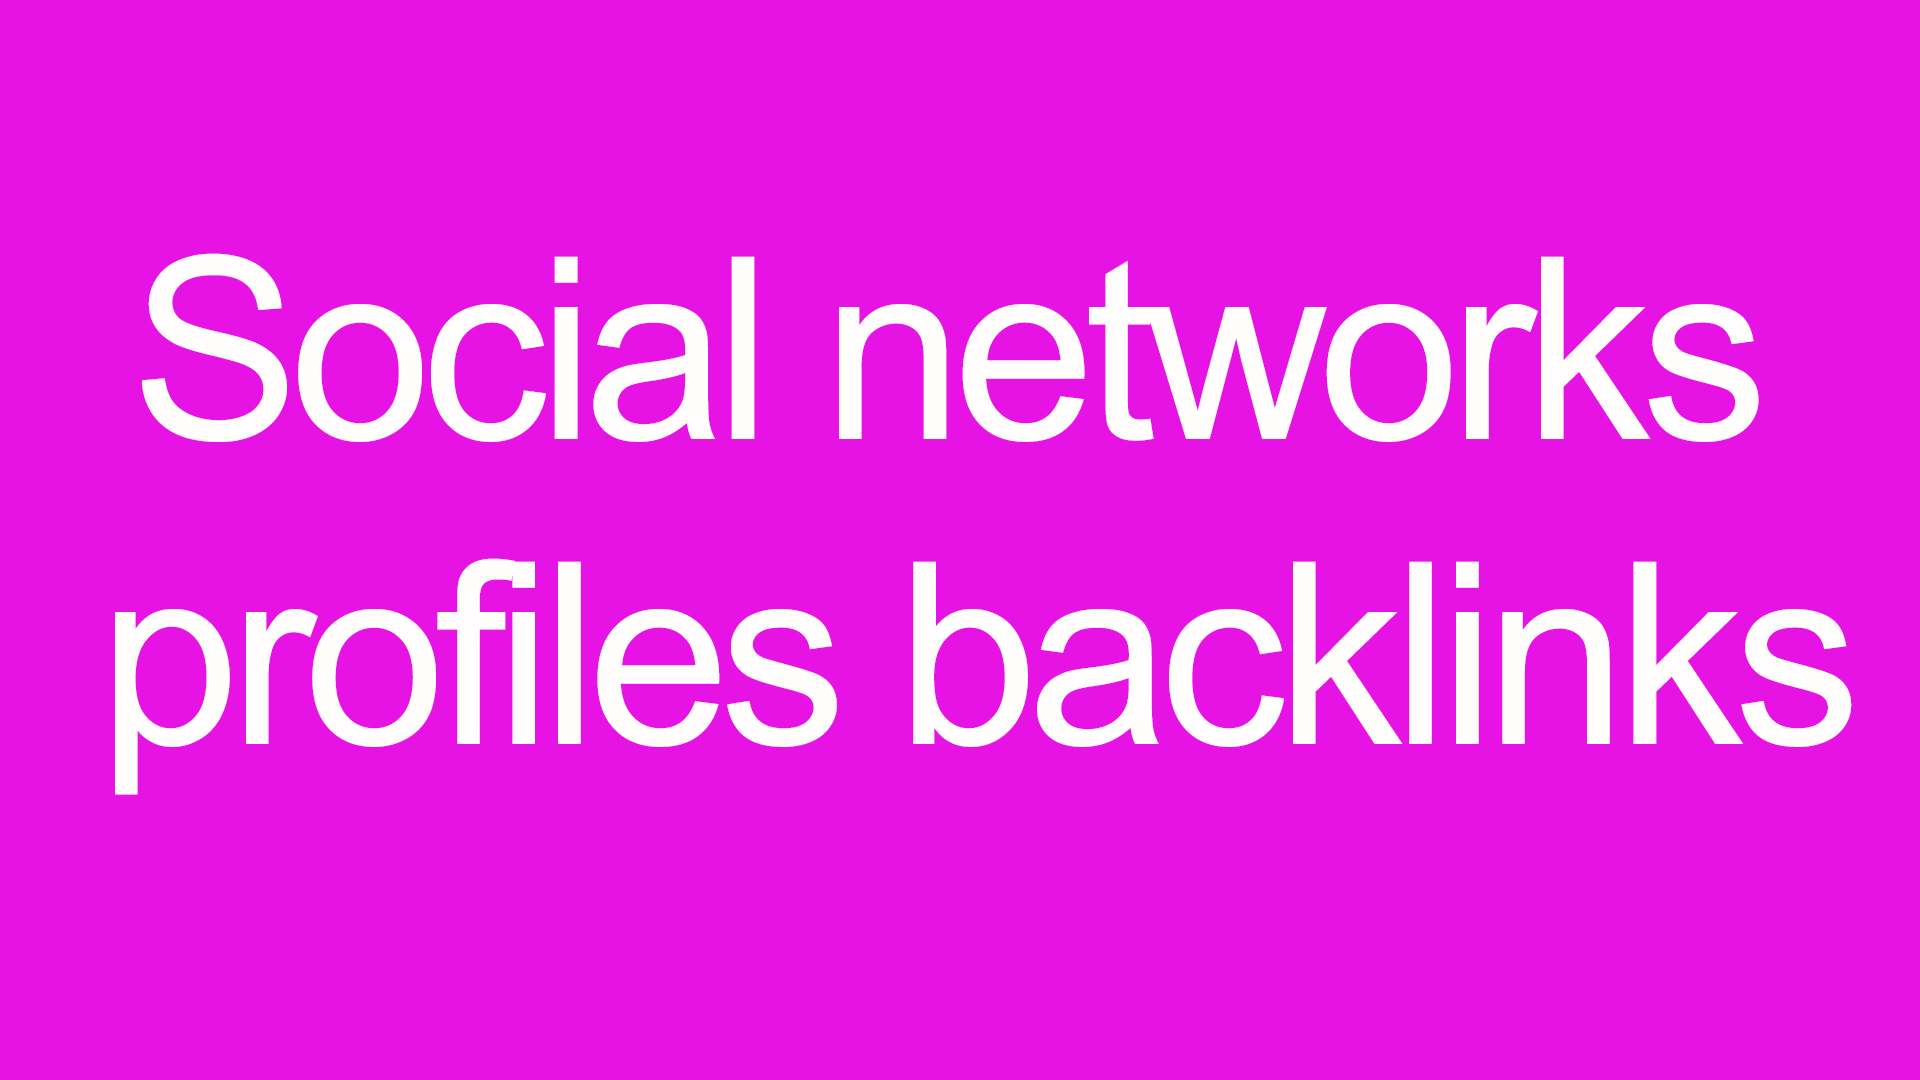 Social networks profiles backlinks 7000 backlinks